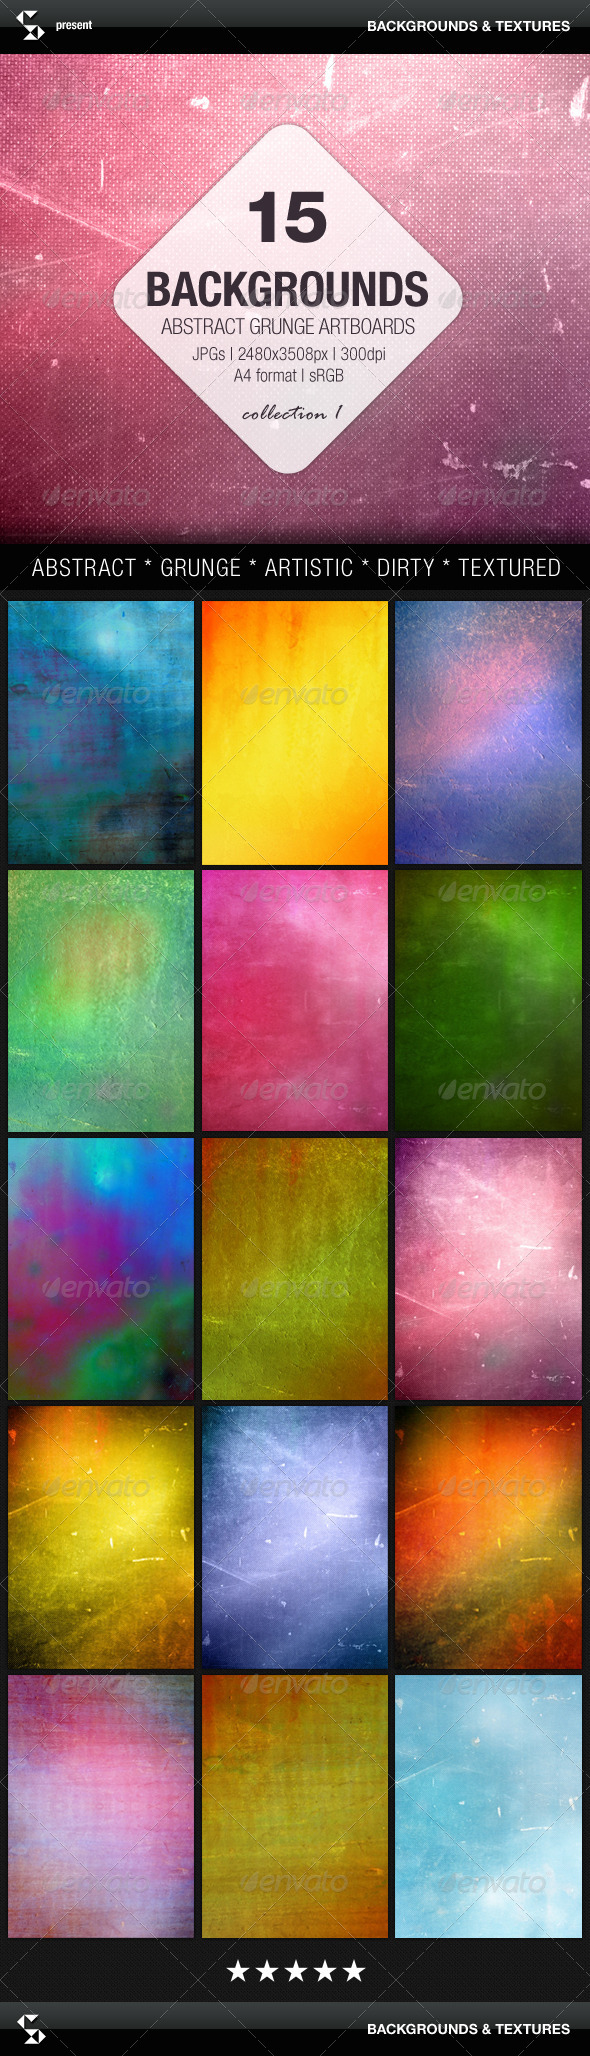 GraphicRiver Abstract Backgrounds 15 Grunge Artboards 7855192